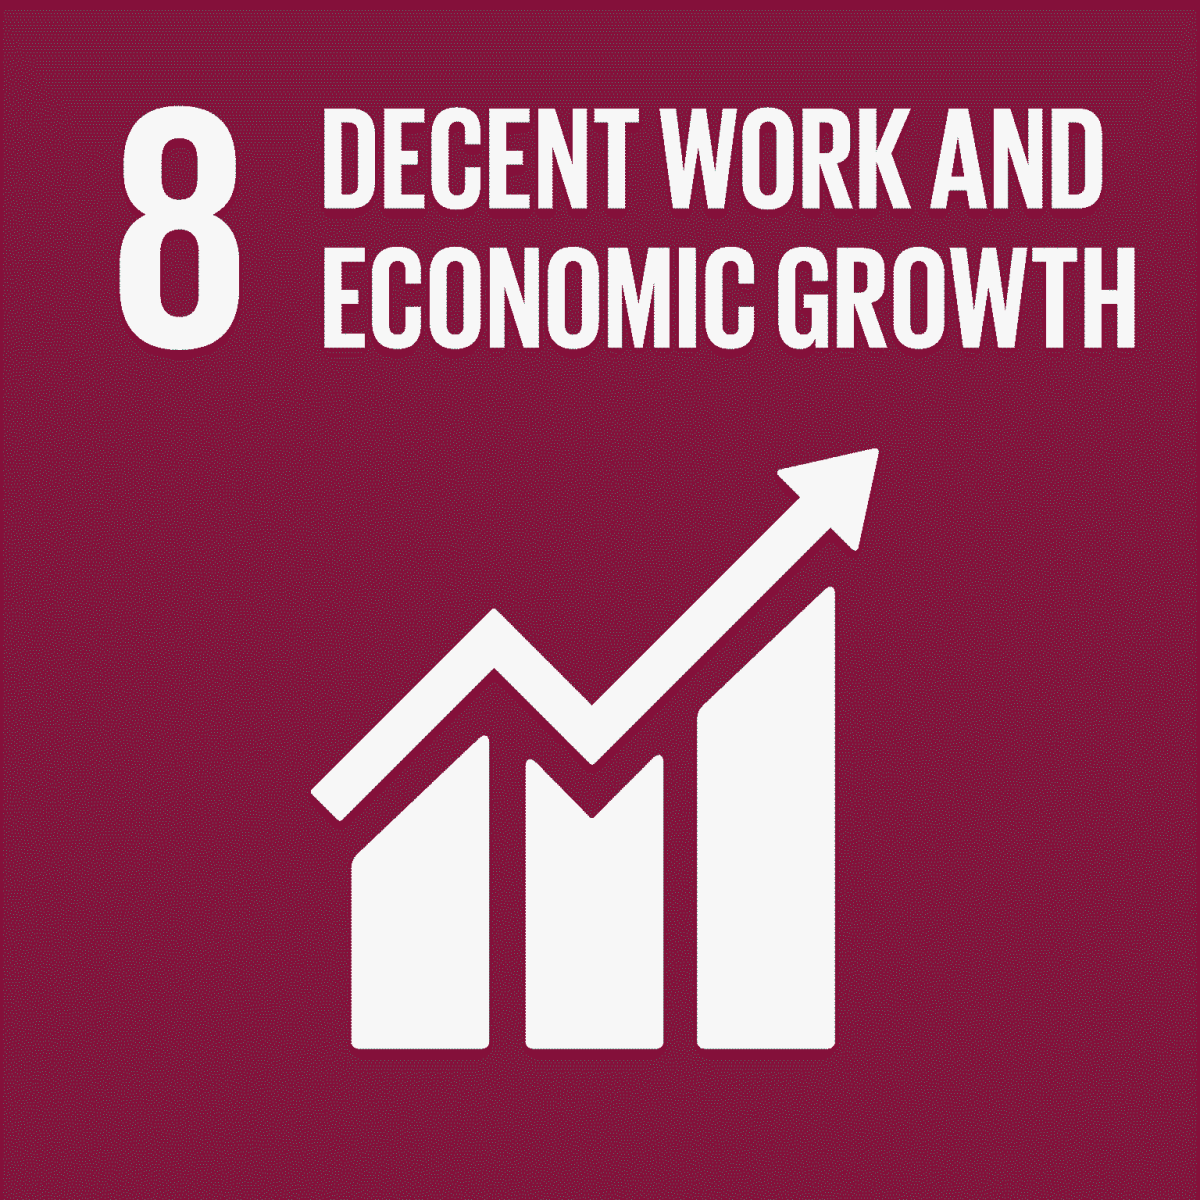 SDG 8: Decent Work and Economic Growth - KIT Royal Tropical Institute